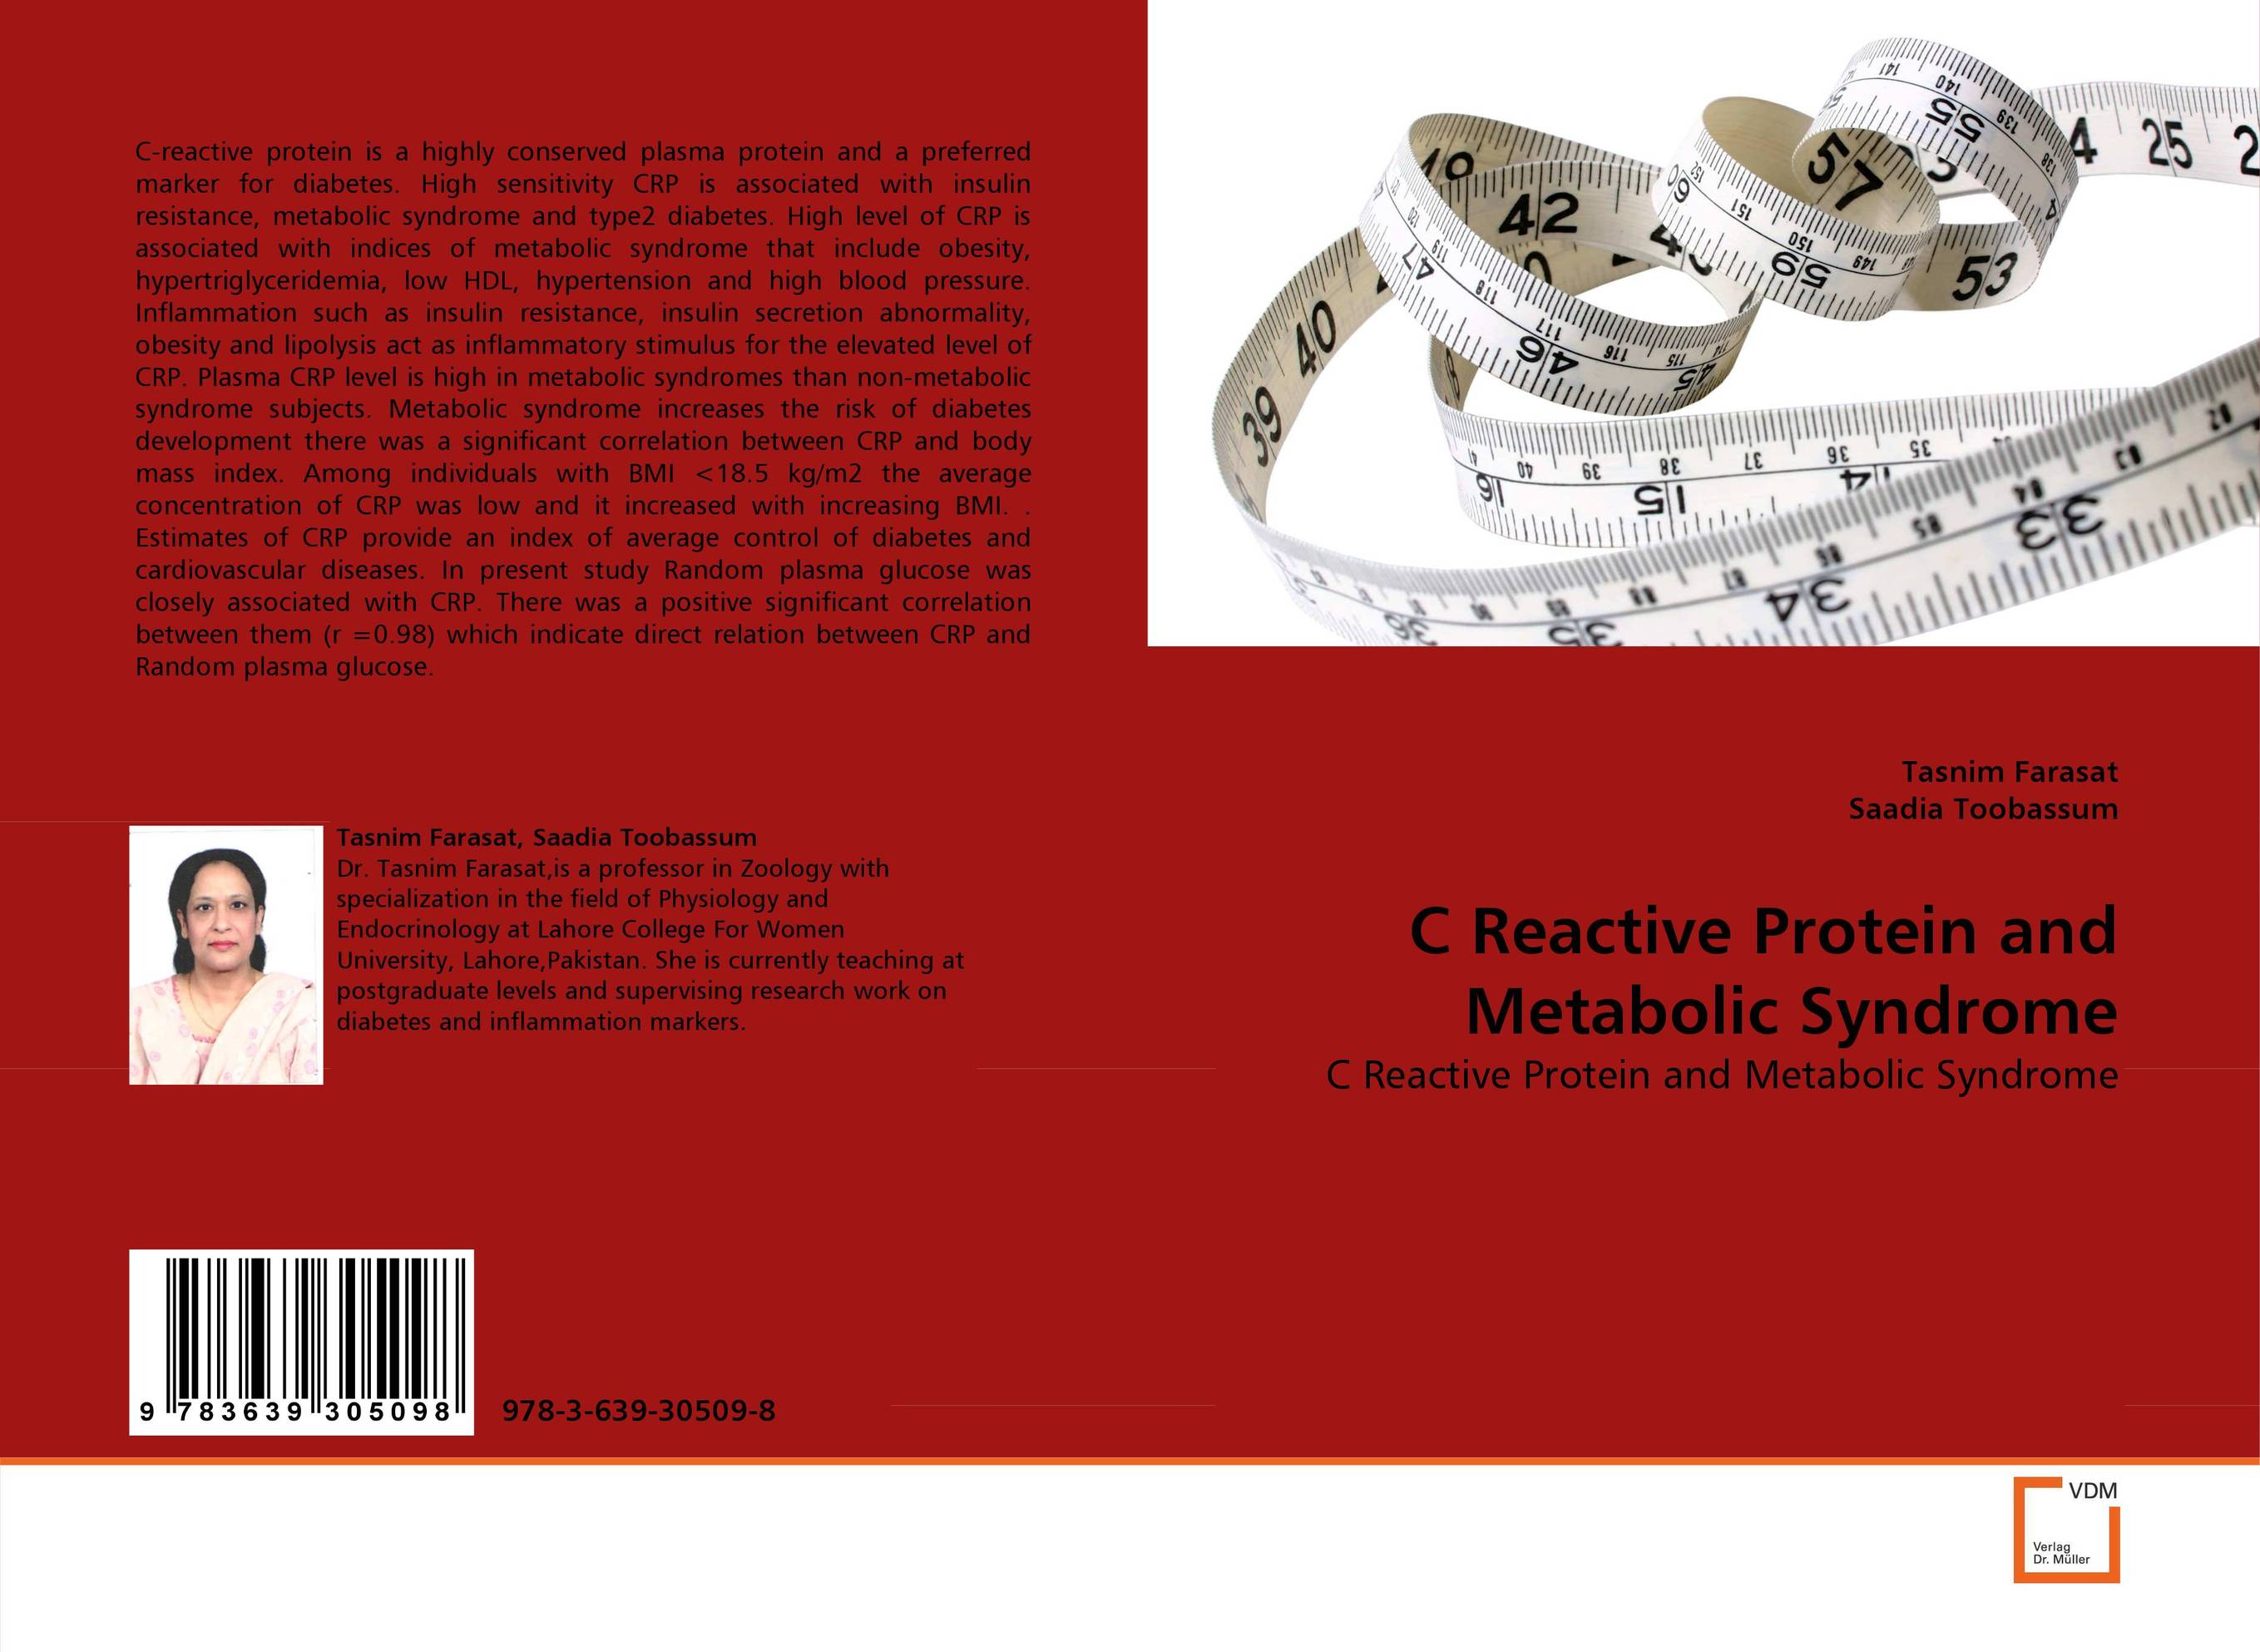 C Reactive Protein and Metabolic Syndrome metabolic benefits of diet and exercise on type 2 diabetes